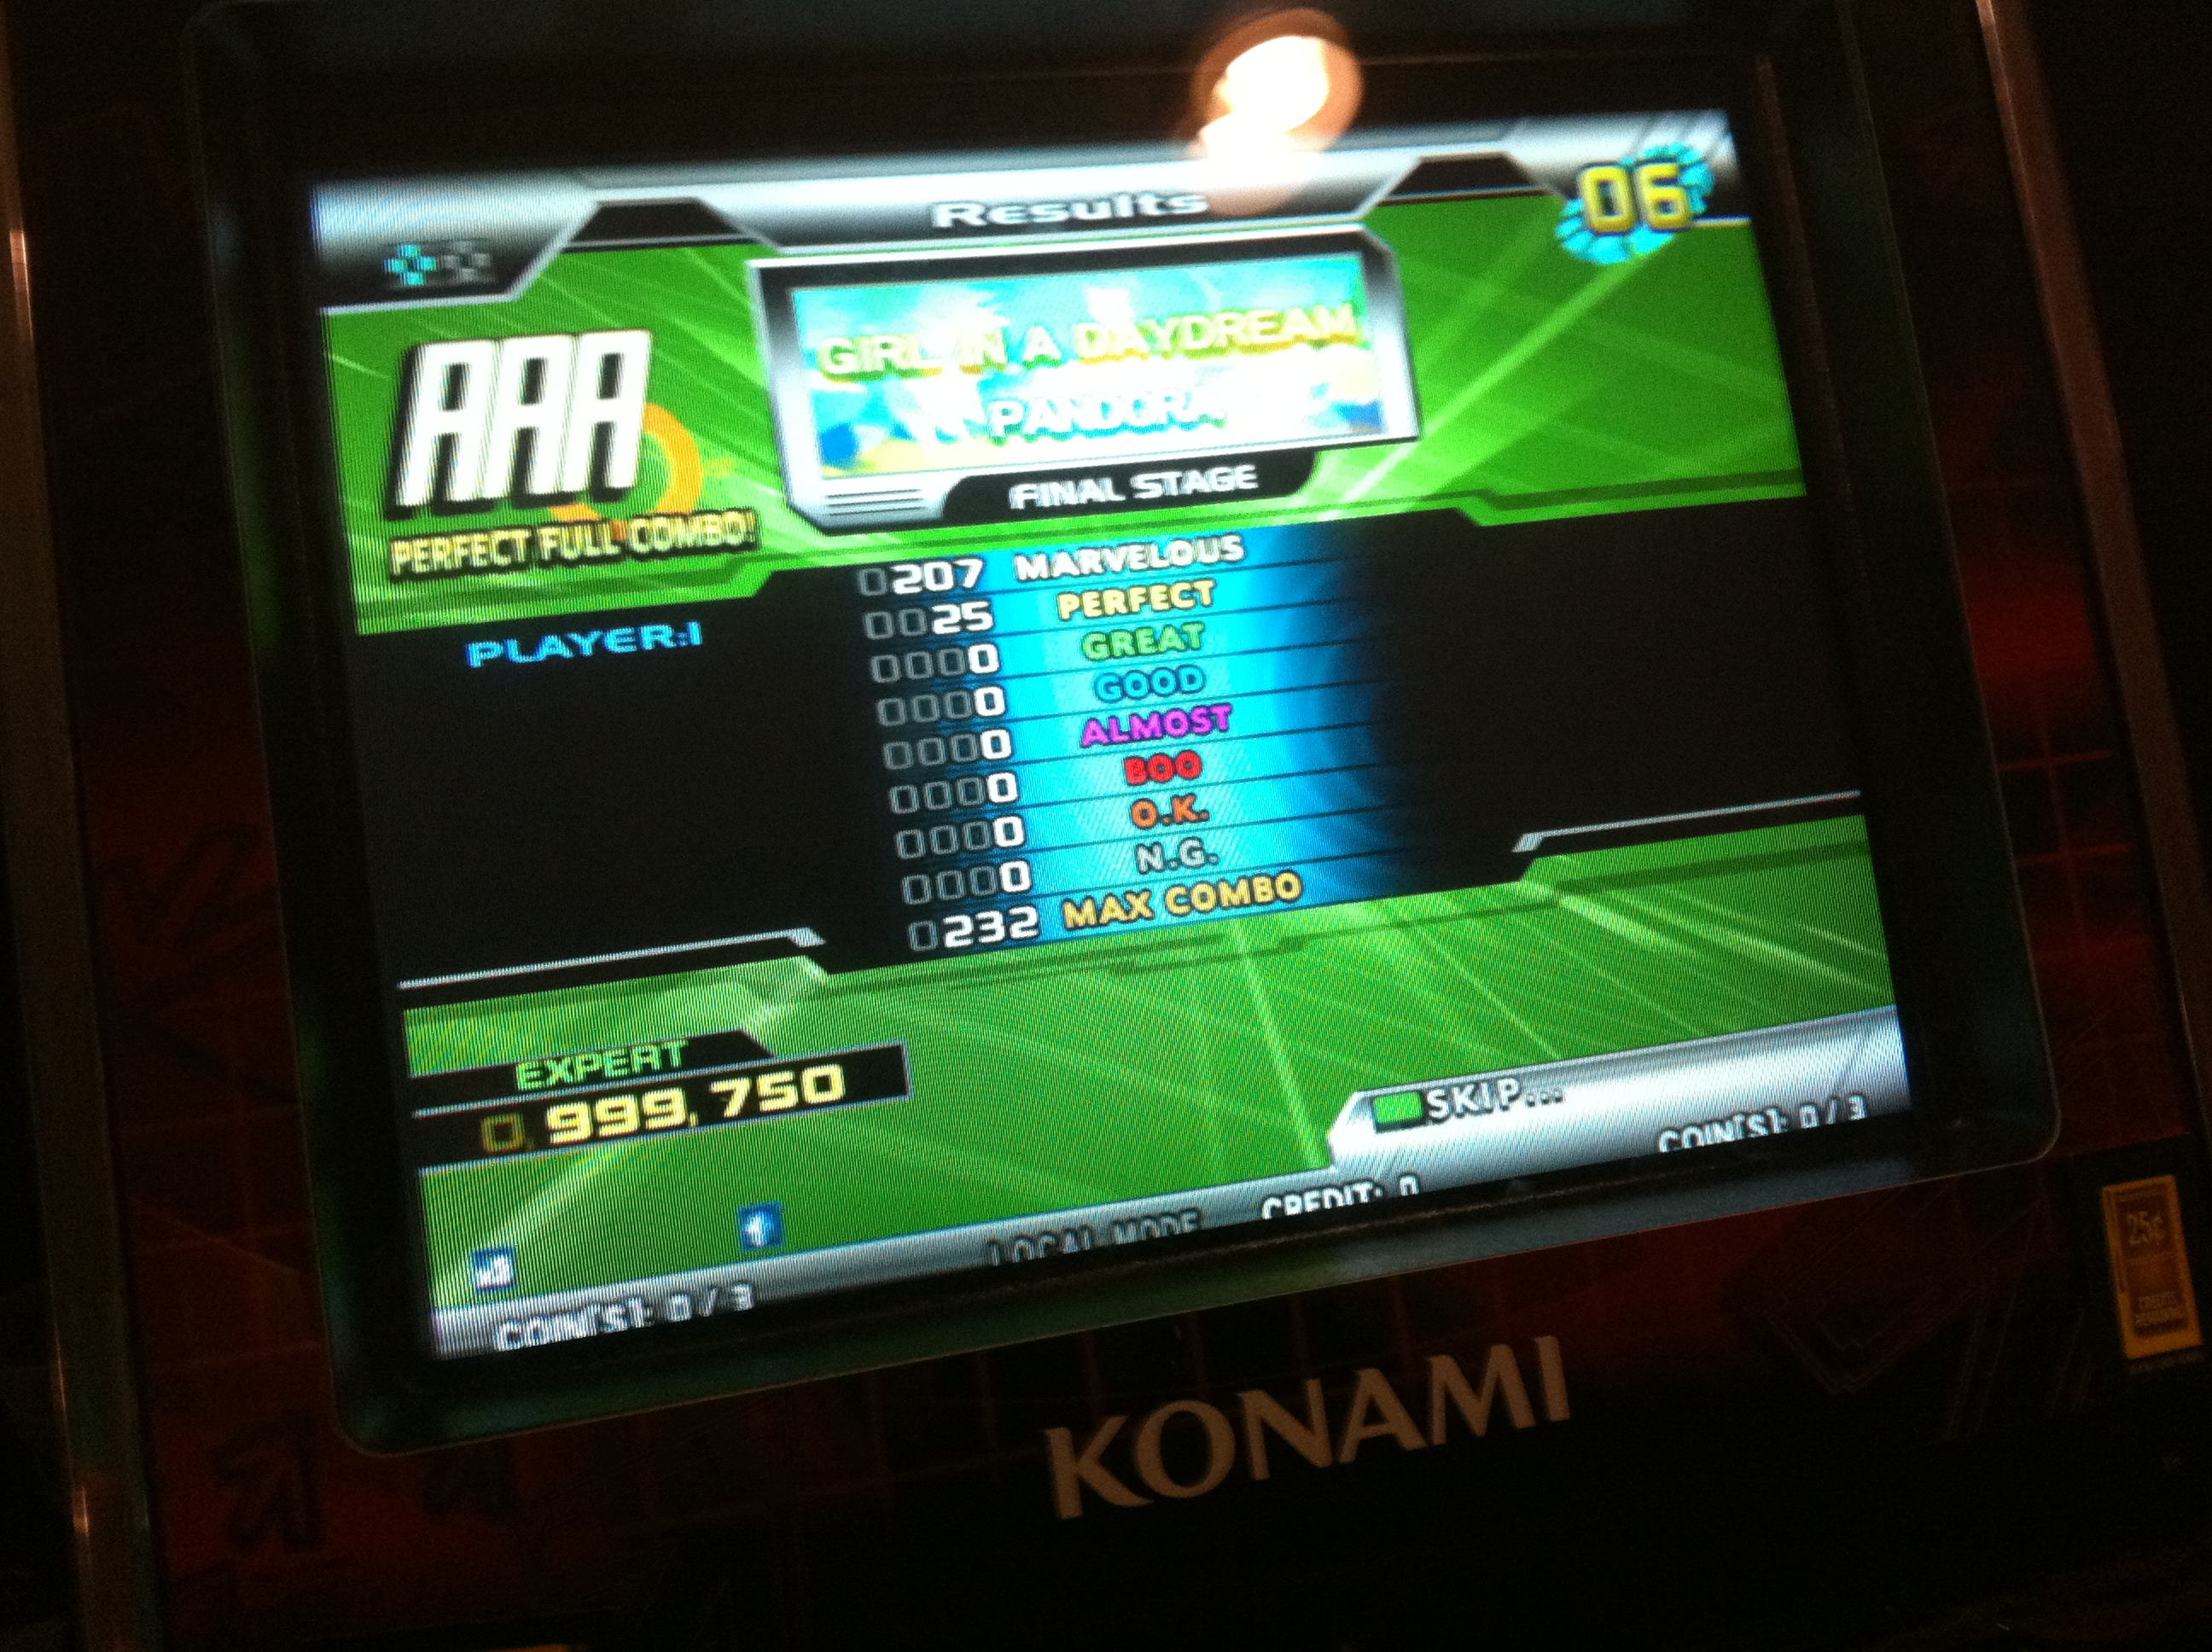 Kon - GIRL IN A DAYDREAM (Expert) PFC AAA on DDR SuperNOVA 2 (North America)